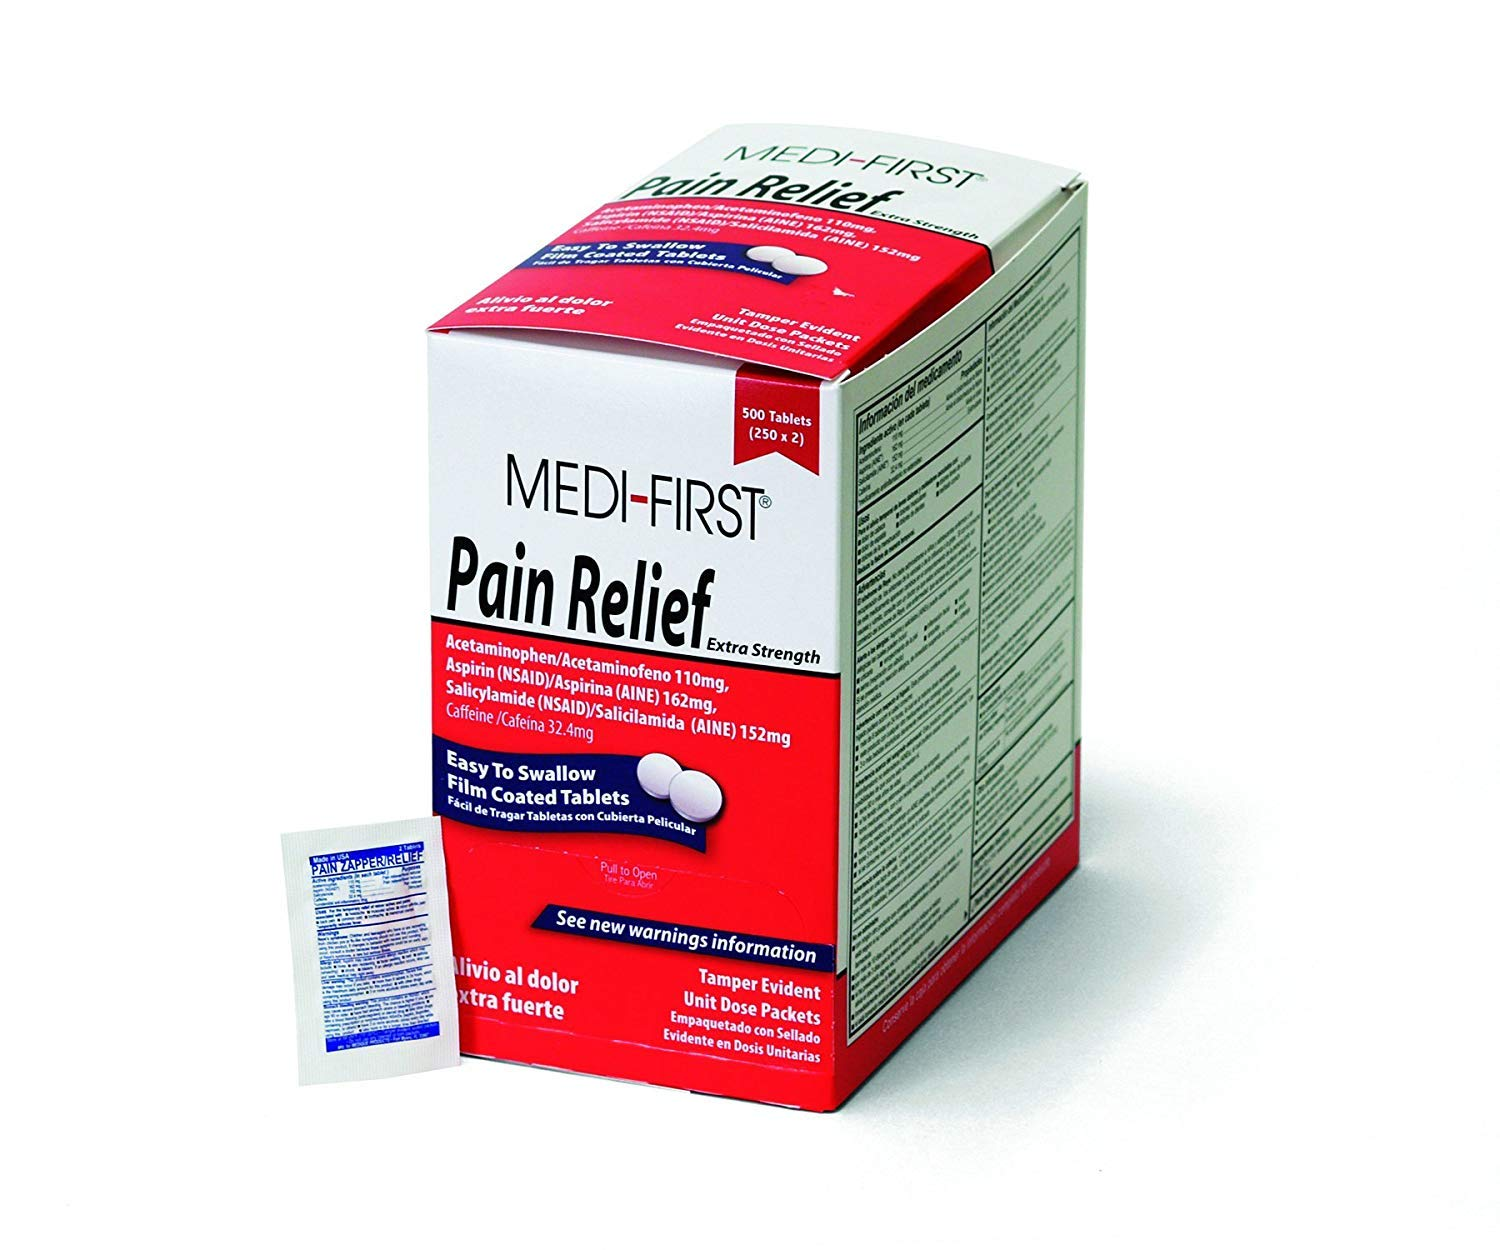 Medi-First pain Relief Tablets with Aspirin & Acetaminophen, 500 Tablets by Medique